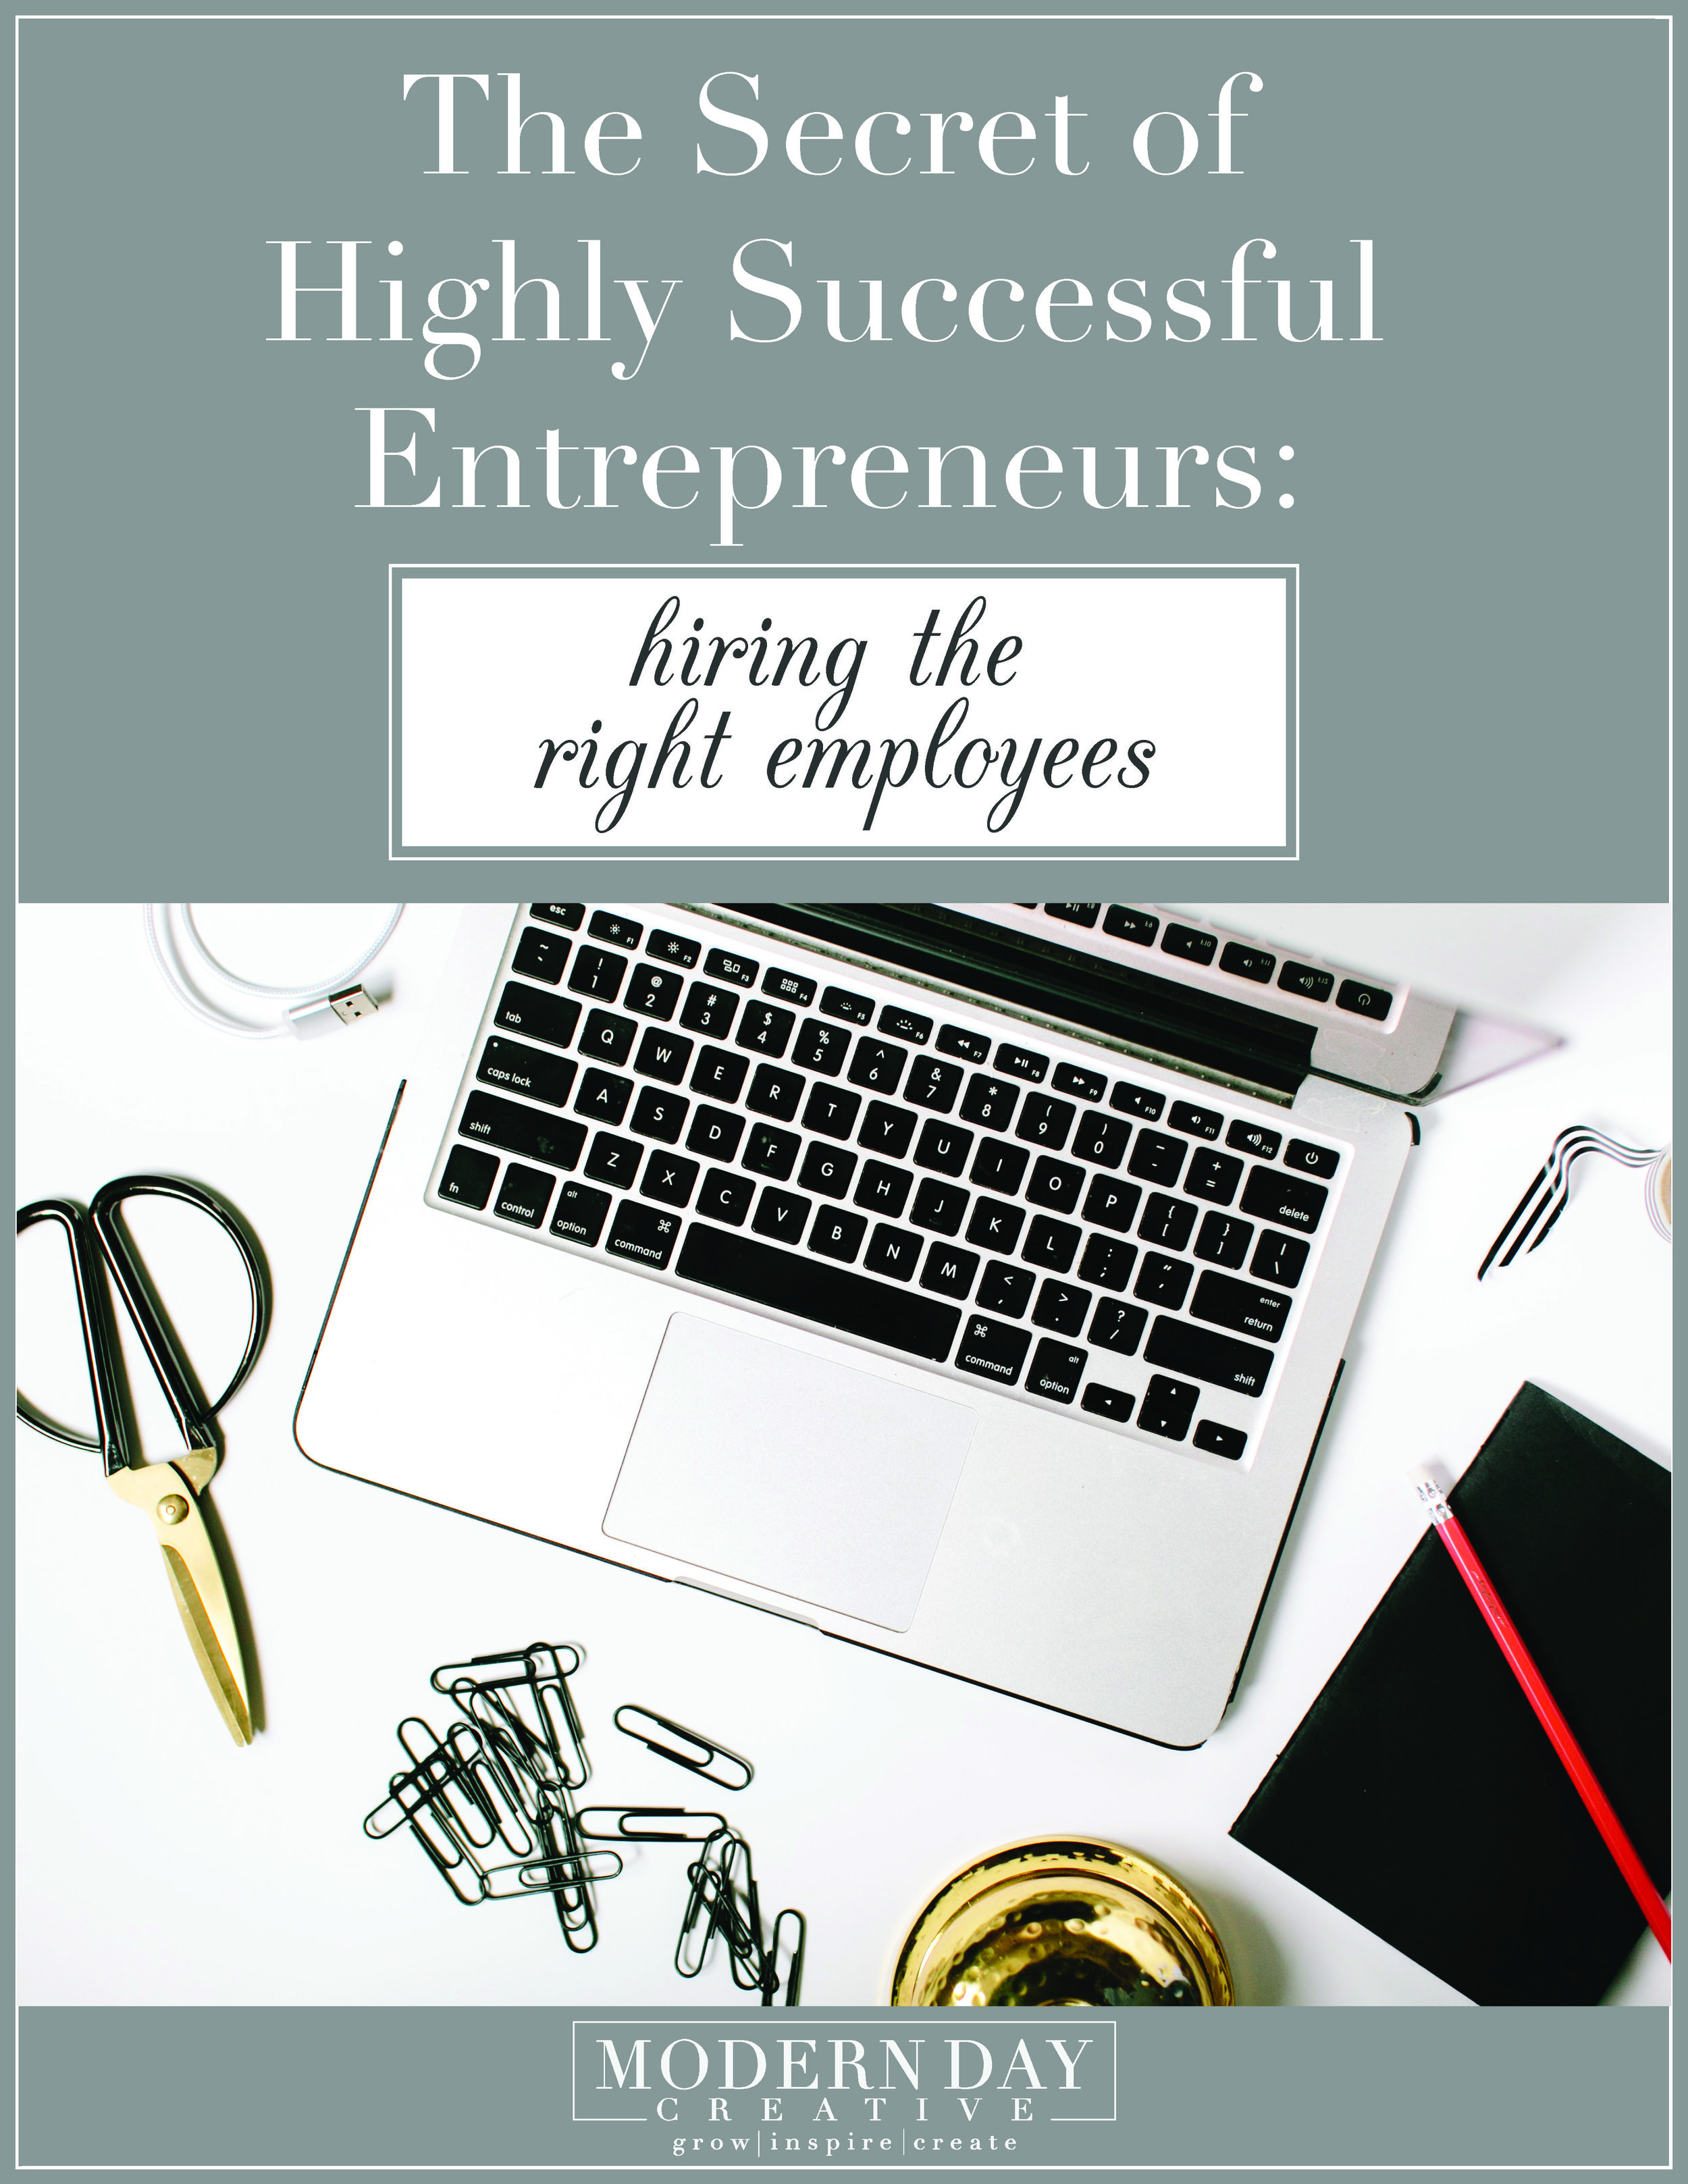 The Secret of Highly Successful Entrepreneurs 8.3_Page_01.jpg